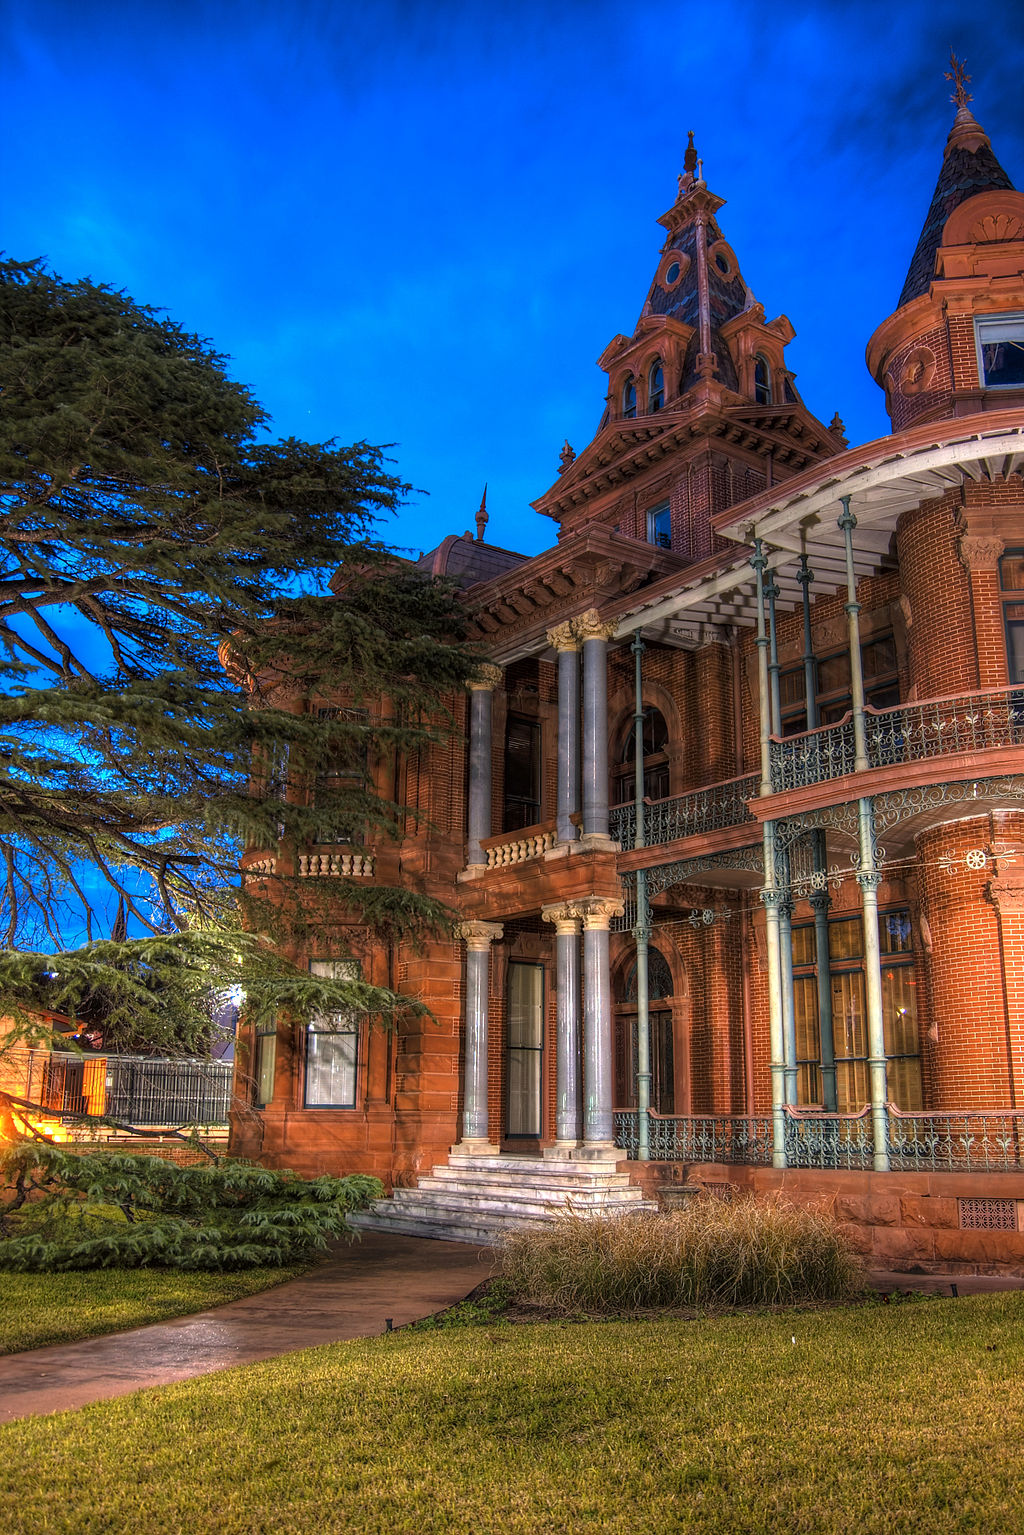 exterior of austin littlefield house at night, one of the most haunted places in austin texas